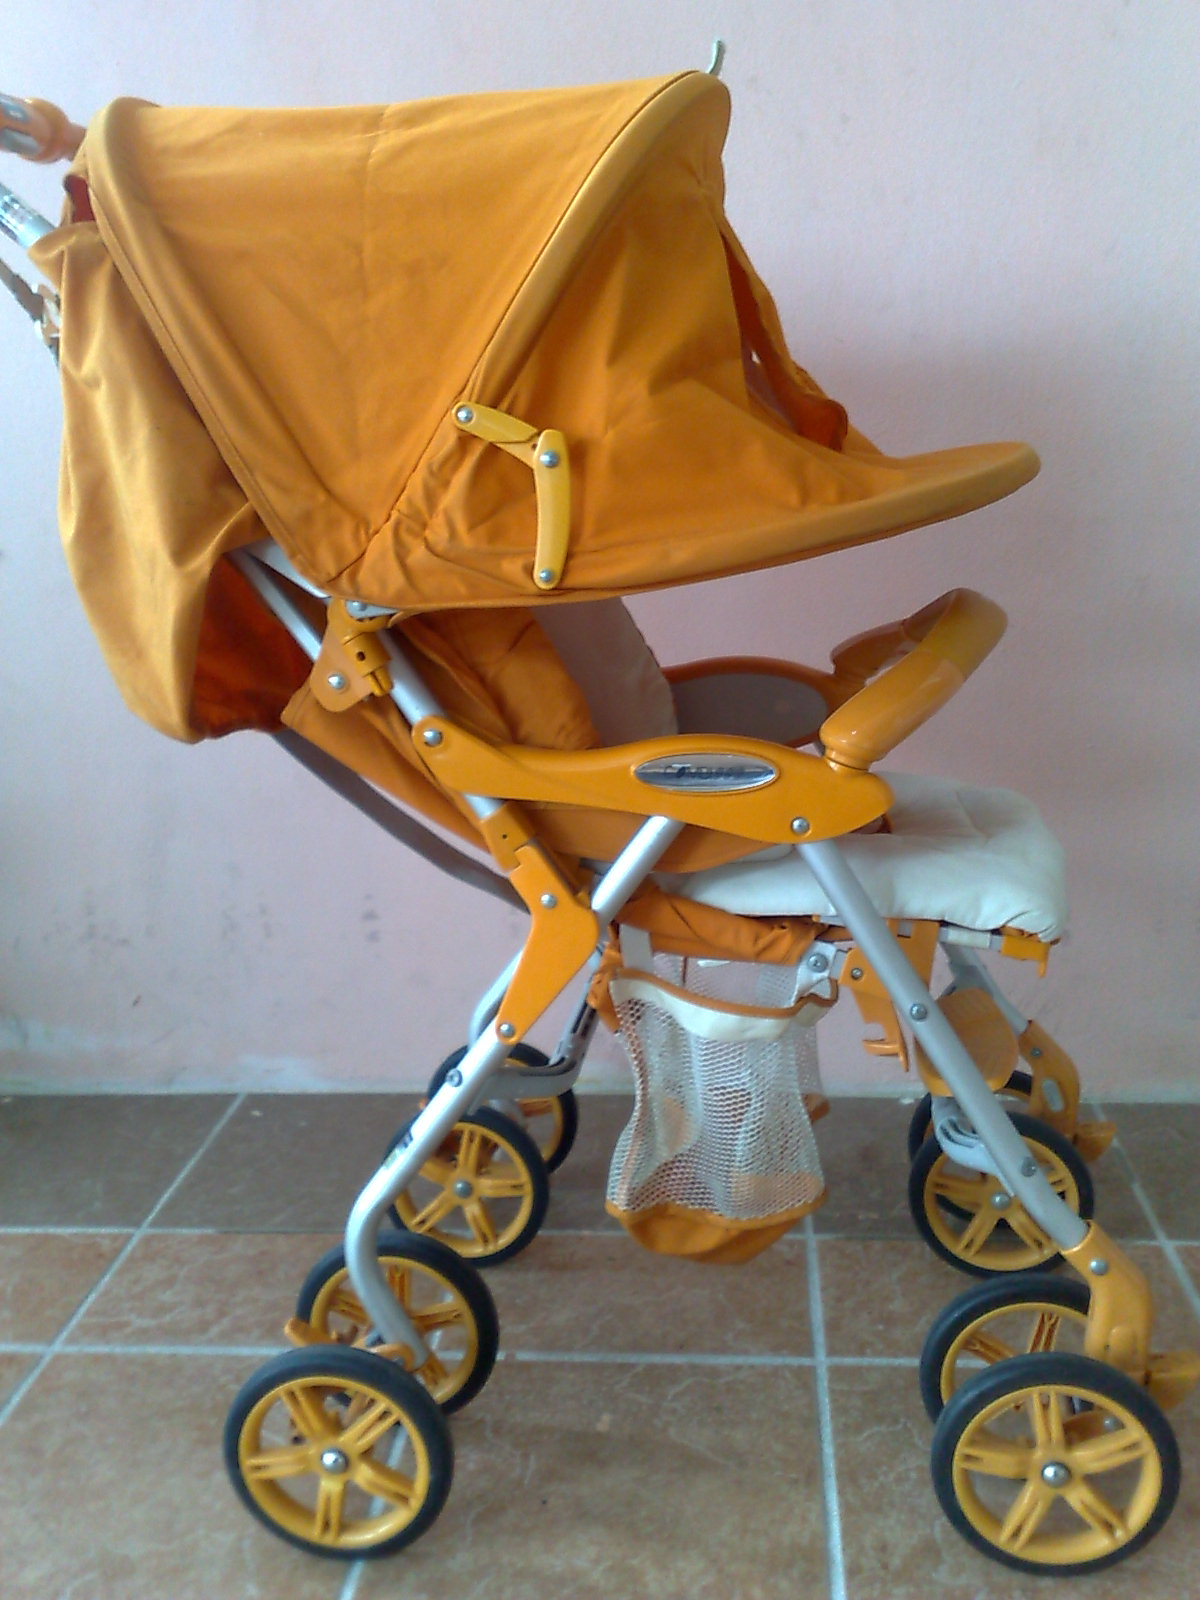 Pu3 Store @~Sold Item~@: Orange Combi Stroller